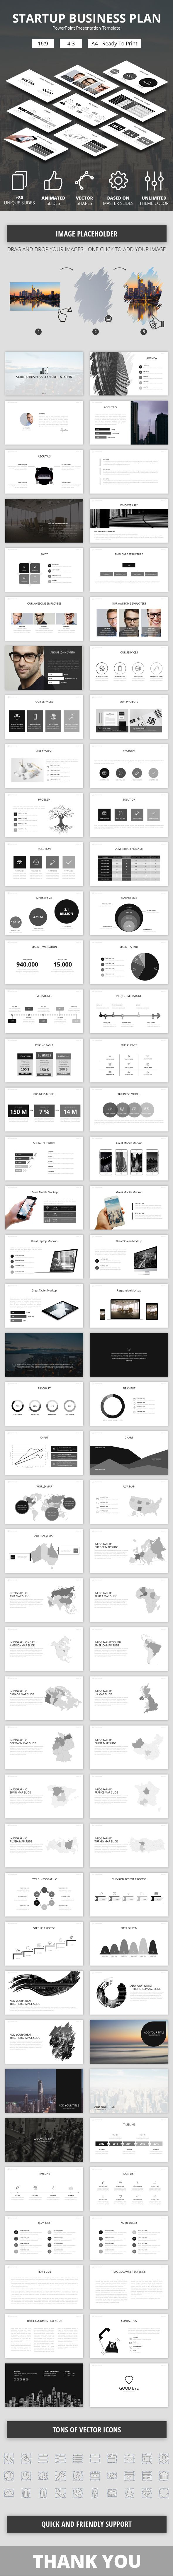 Startup Business Plan Powerpoint Presenation Template  Startup